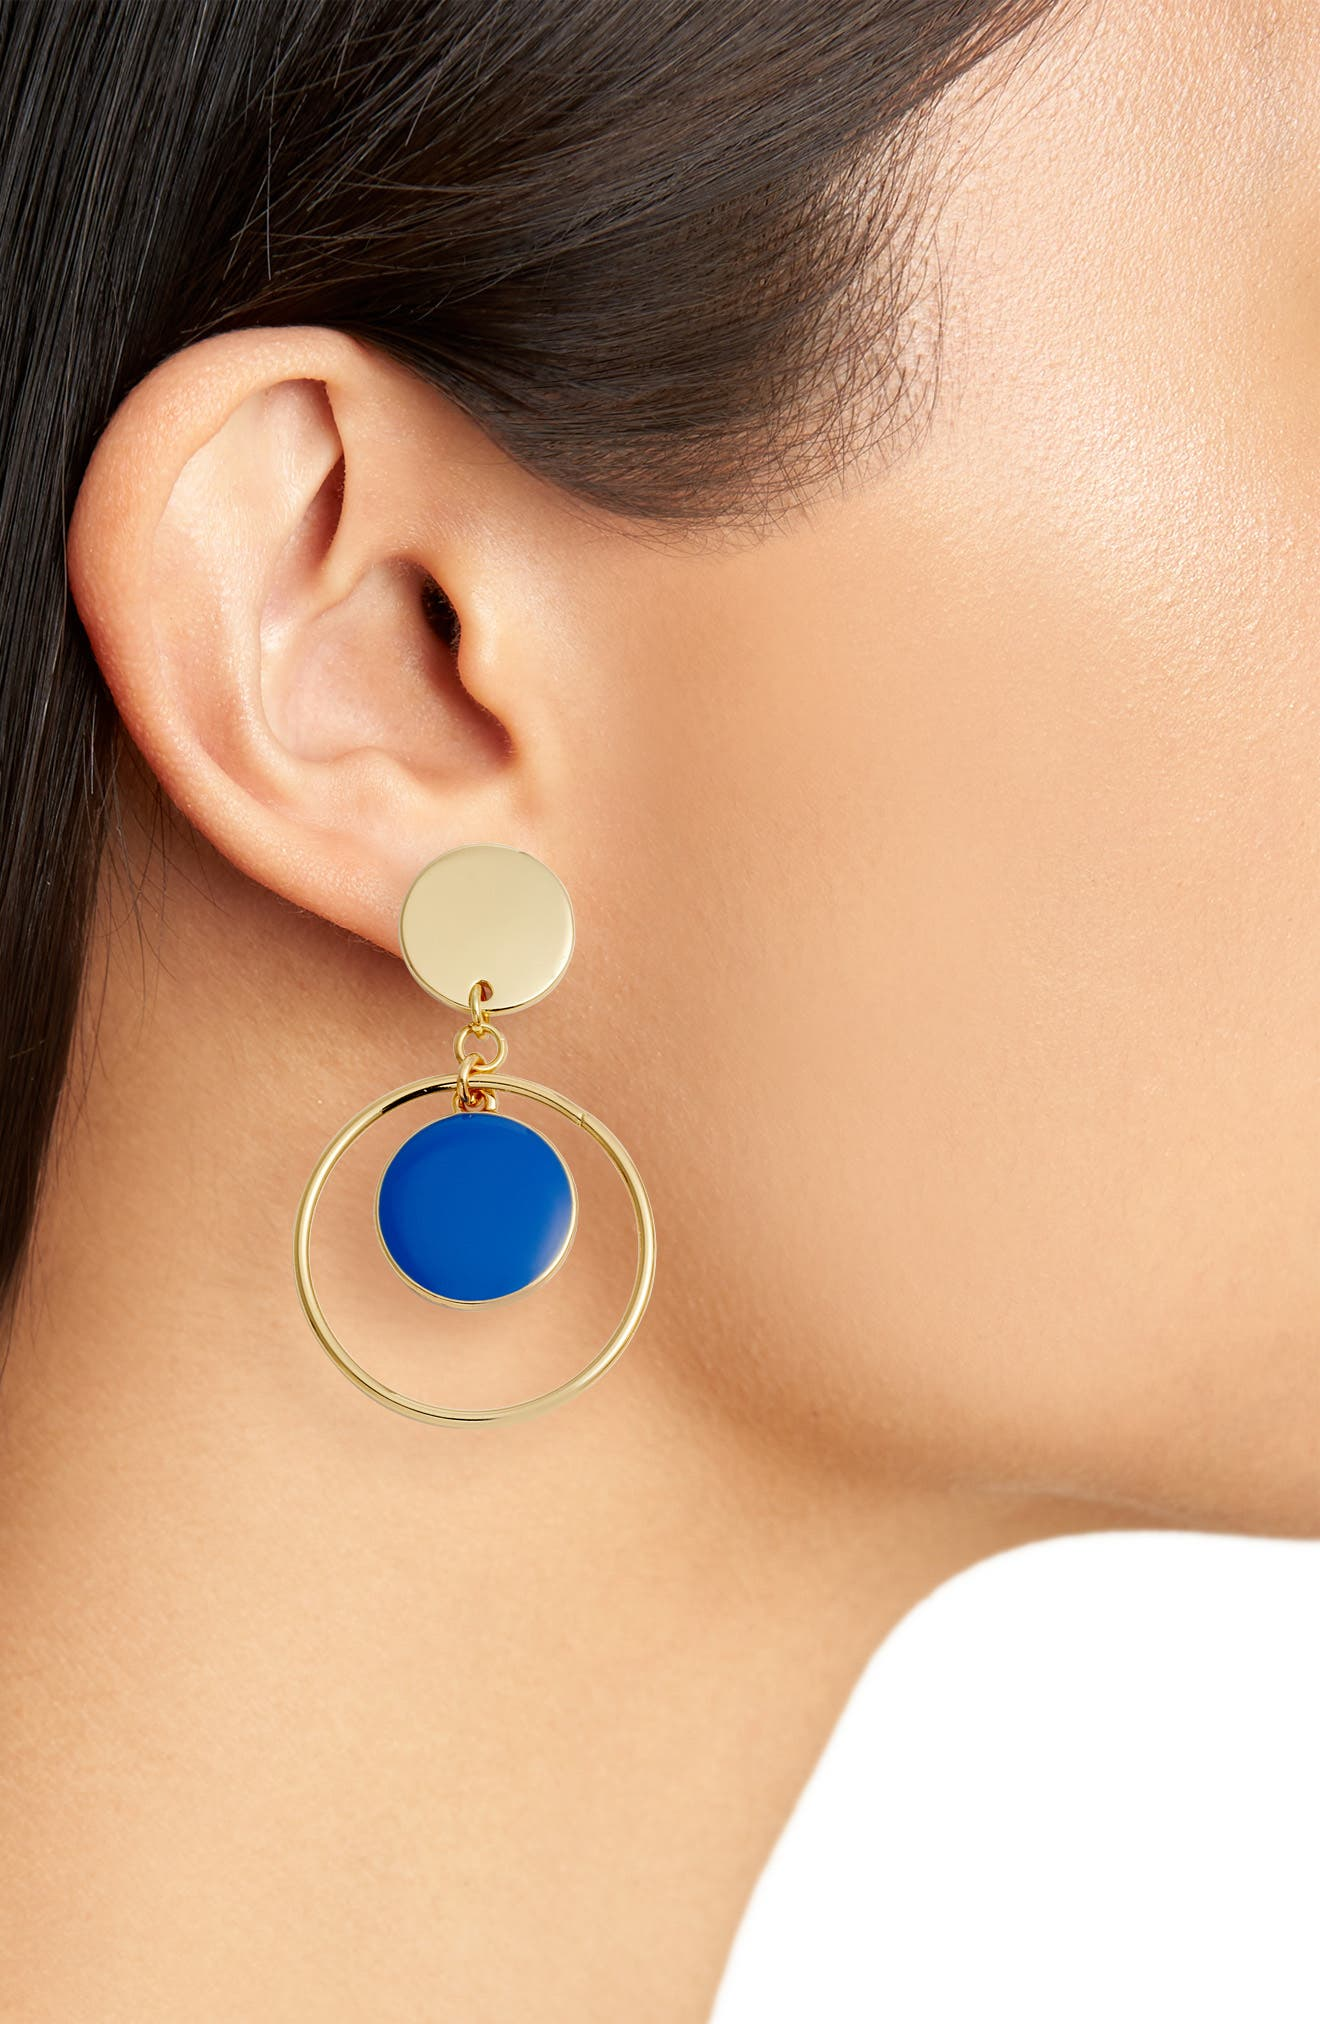 Double Disc with Hoop Drop Earrings,                             Alternate thumbnail 2, color,                             Blue- Gold